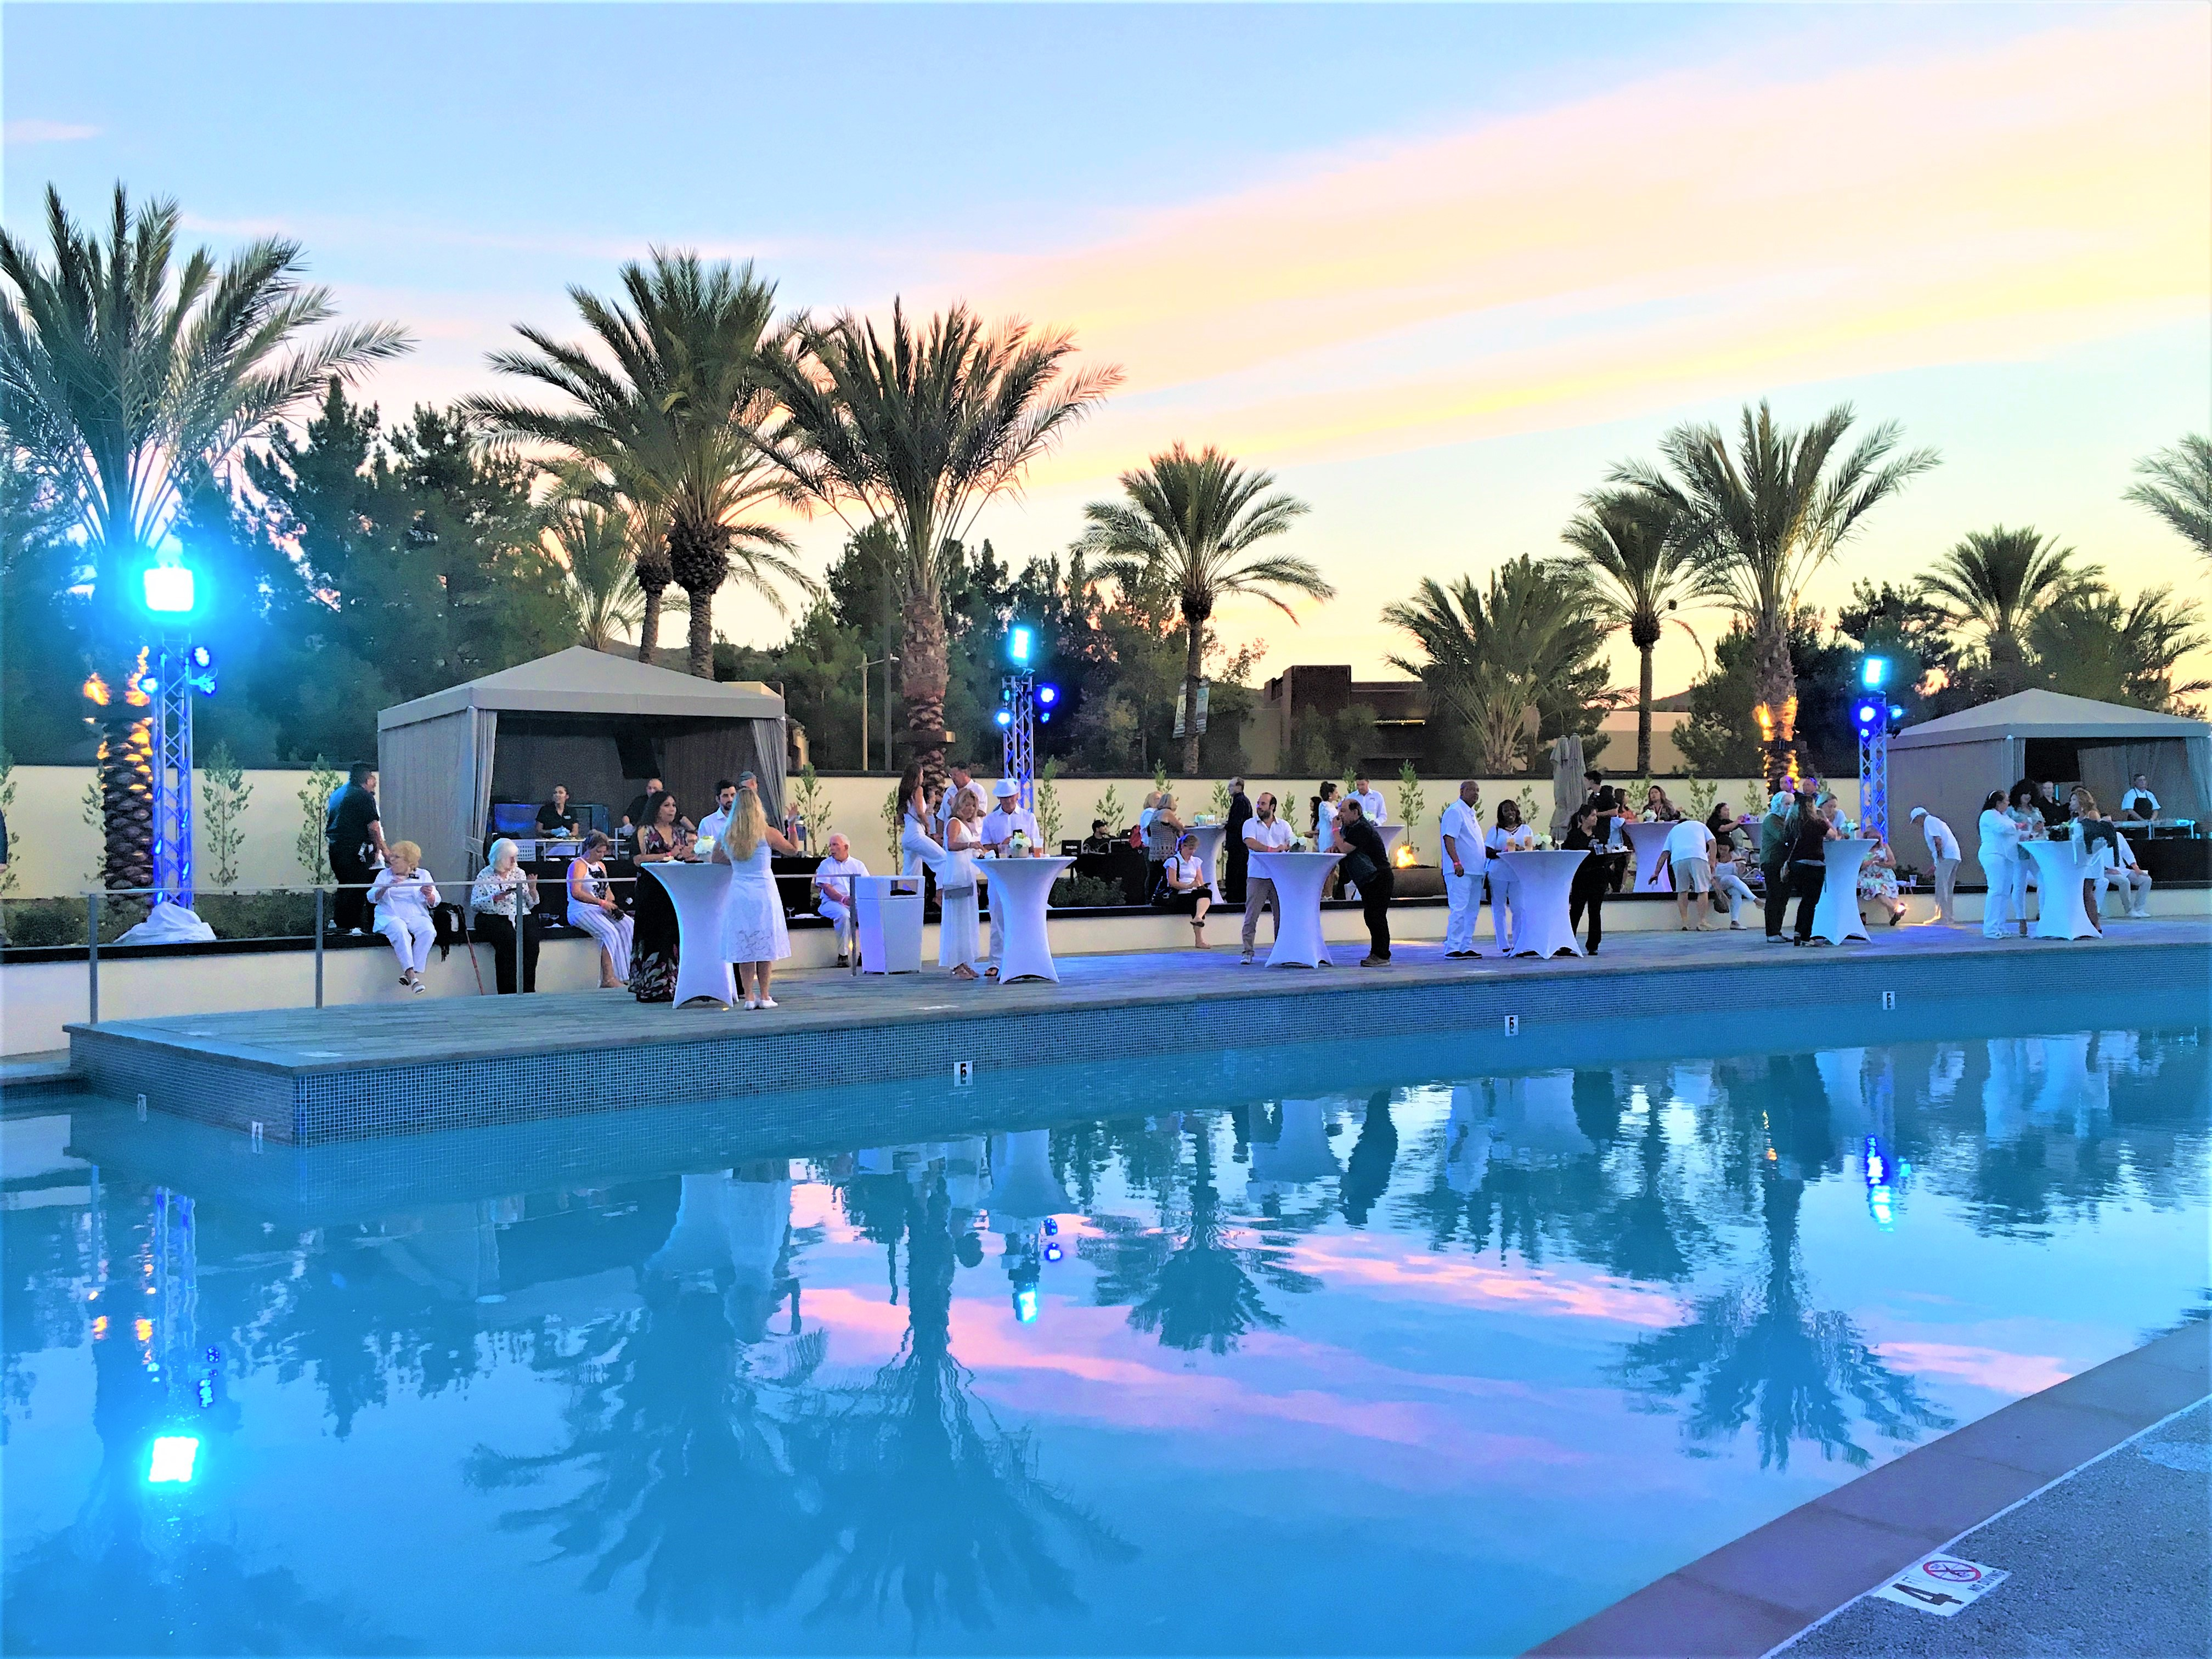 Latest Viejas Casino addition is a getaway for grownups